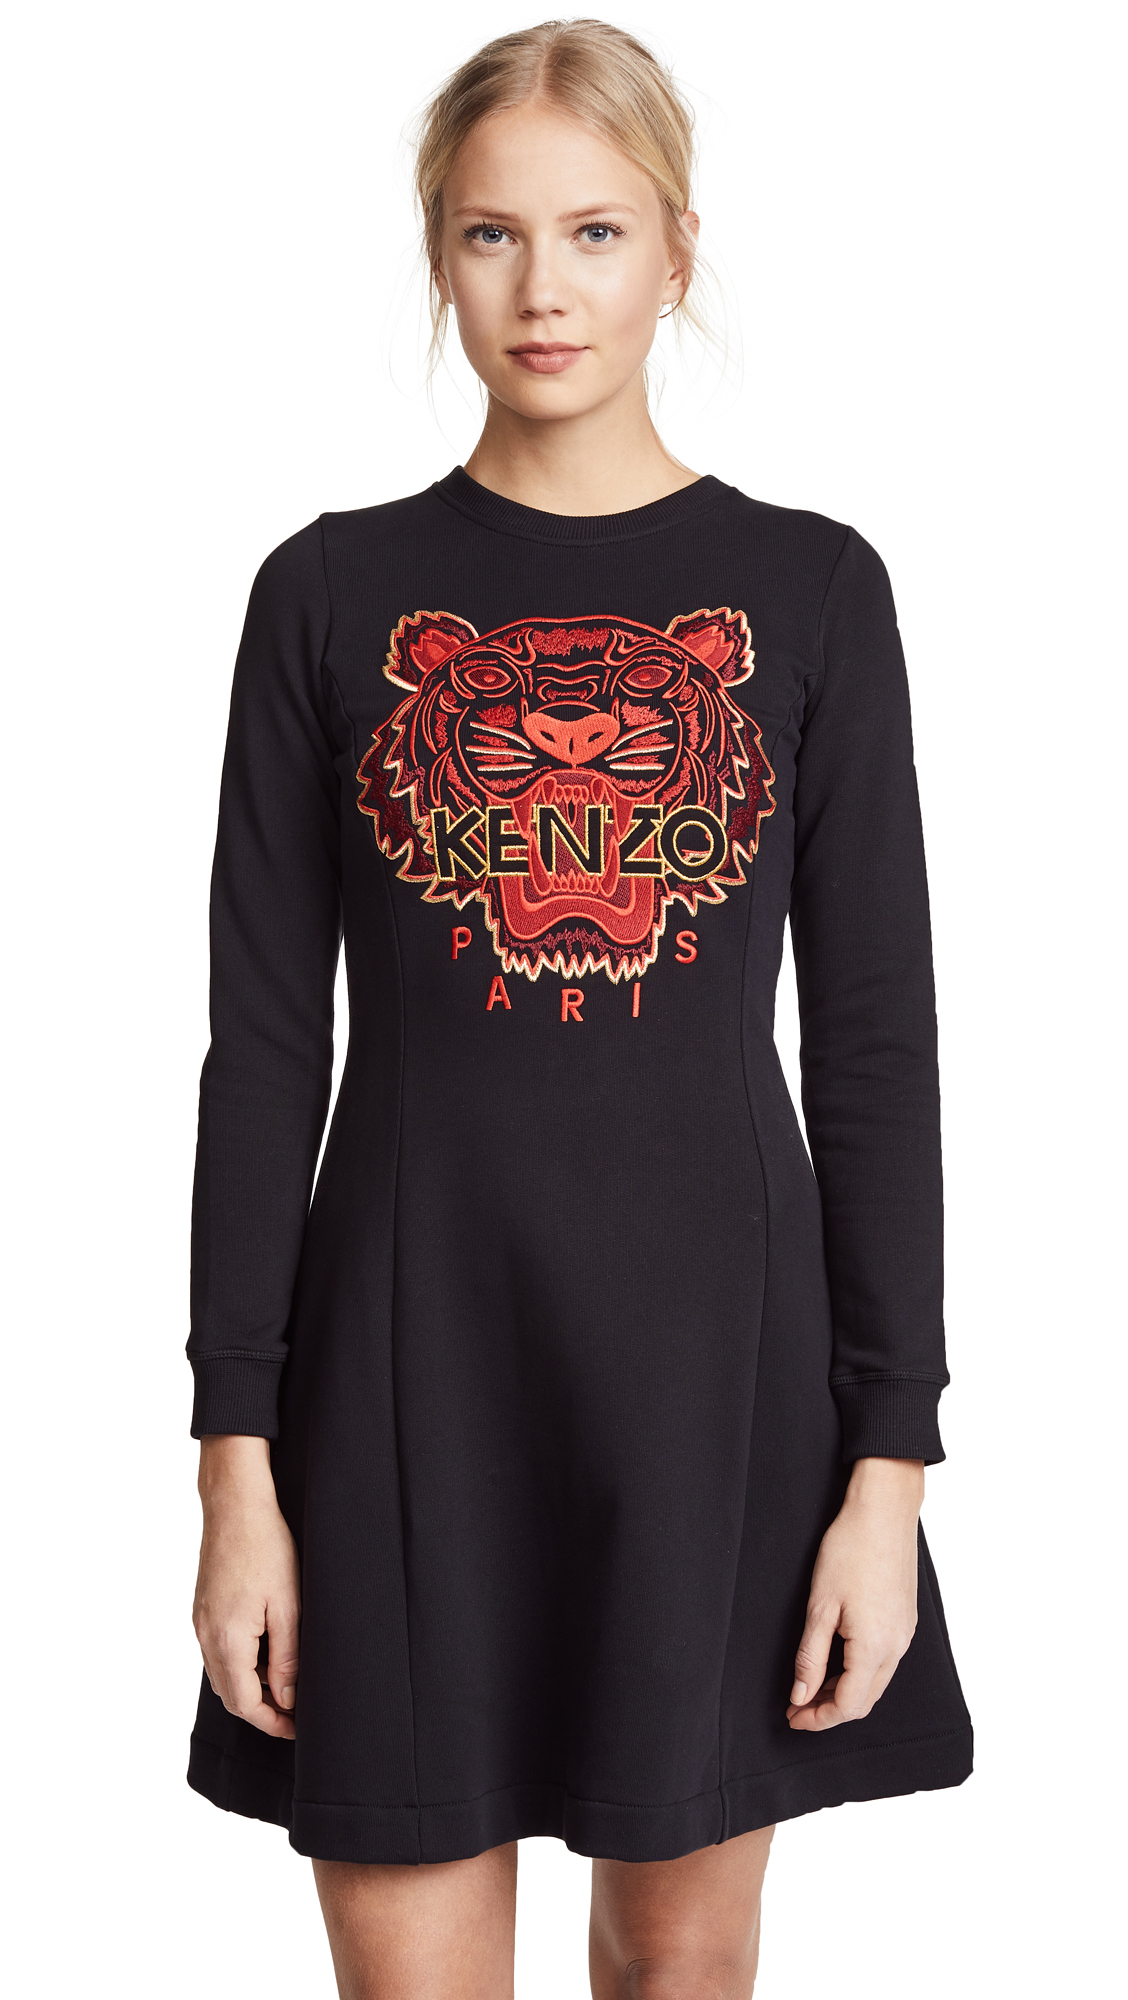 KENZO Tiger Sweatshirt Dress - Black